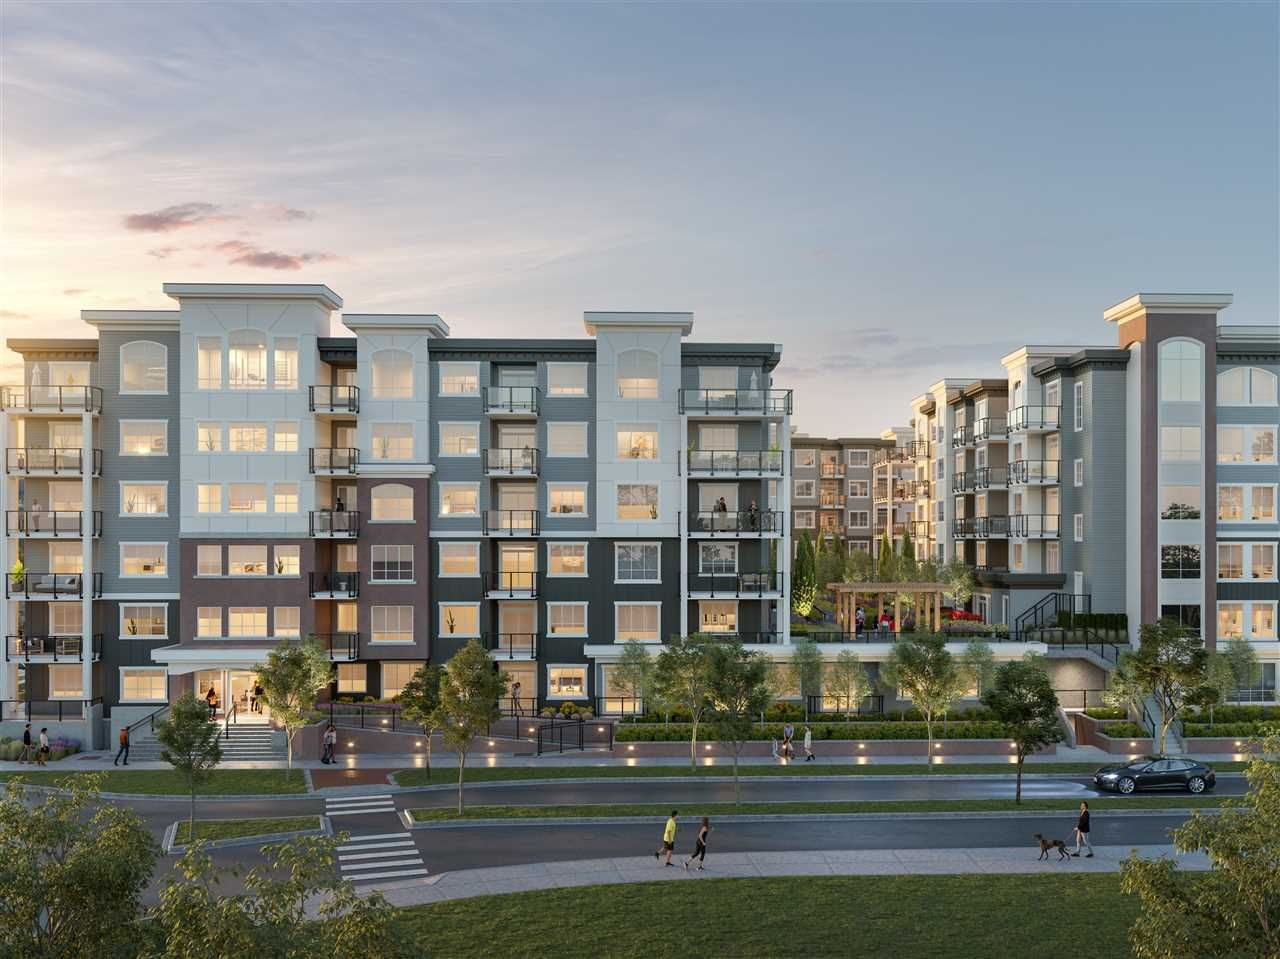 """Main Photo: 402 2180 KELLY Avenue in Port Coquitlam: Central Pt Coquitlam Condo for sale in """"Montrose Square"""" : MLS®# R2512816"""